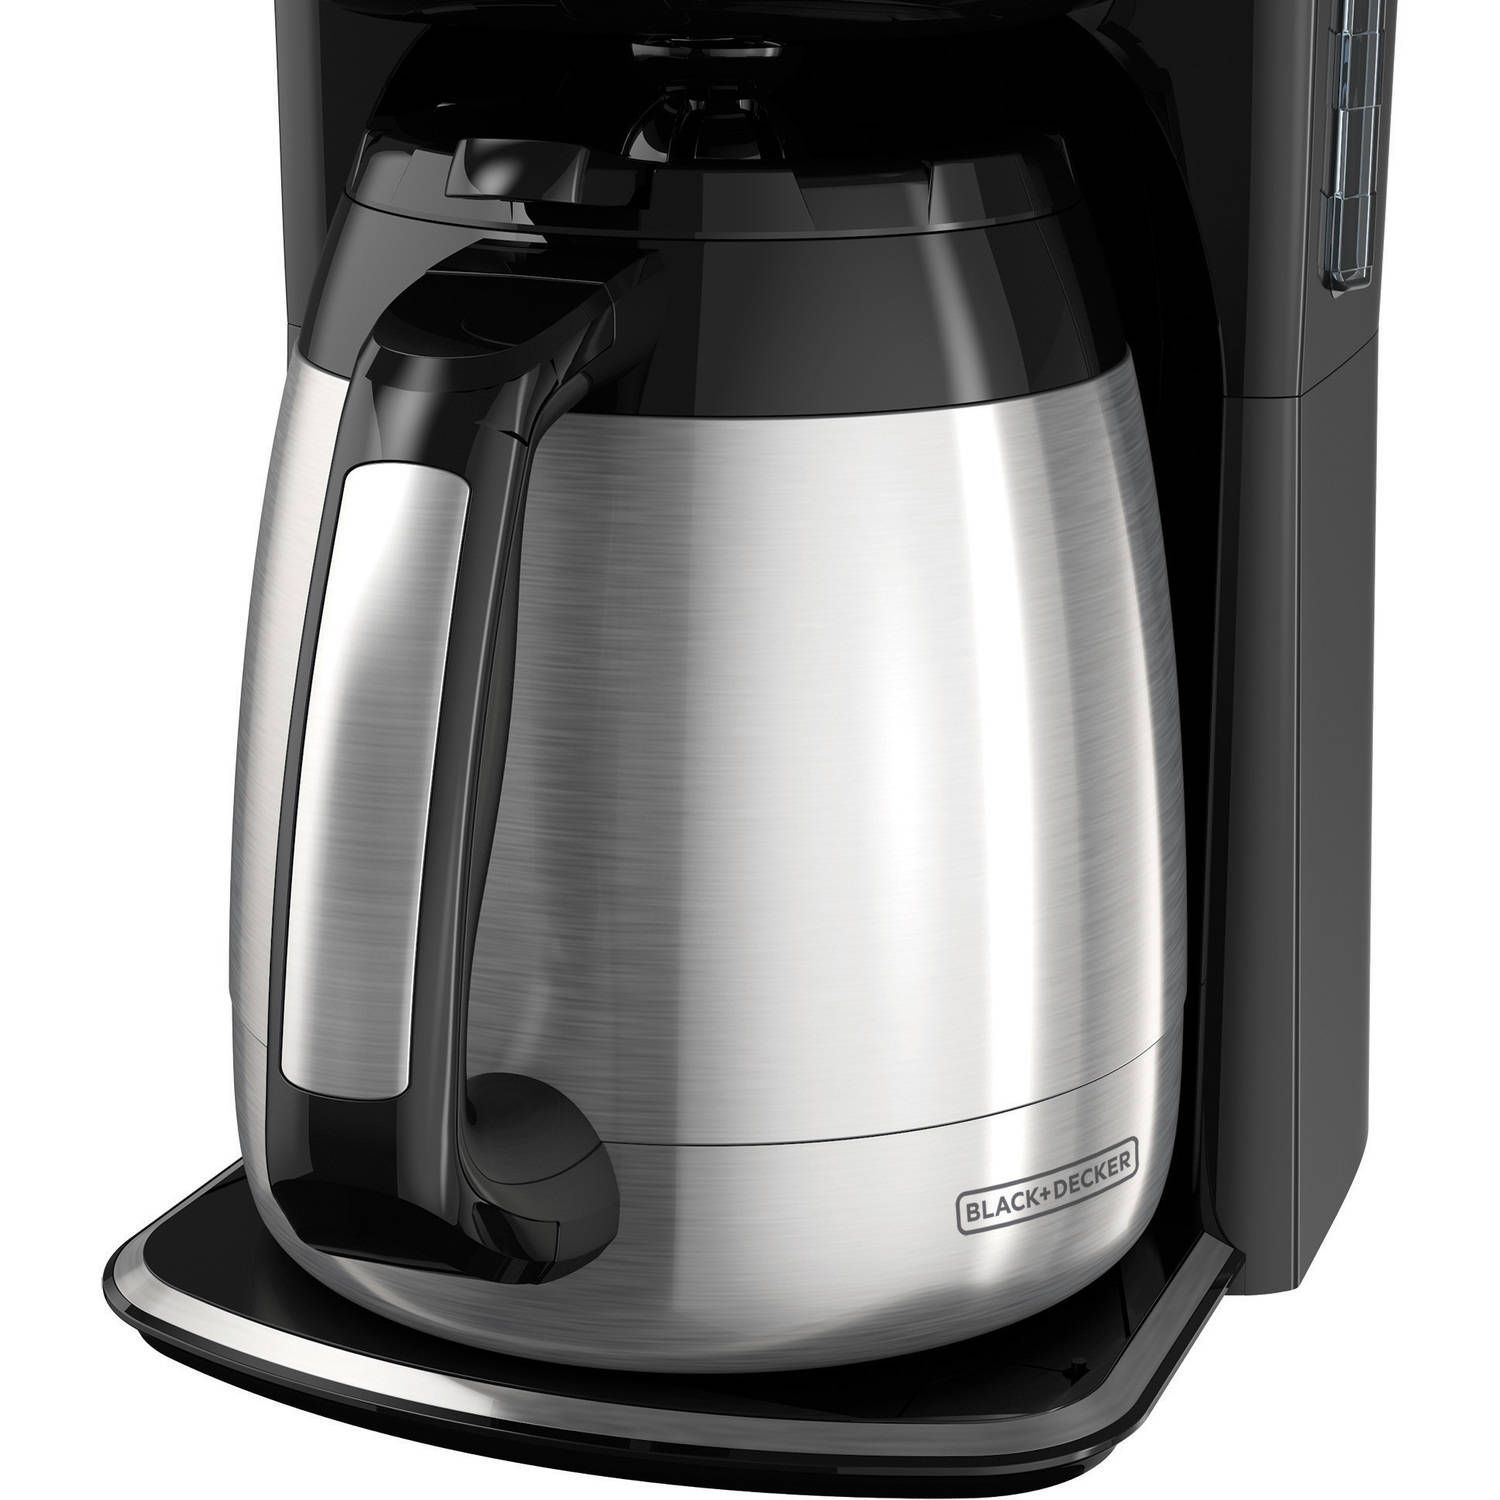 Black and decker 12 cup programmable - Black Decker 12 Cup Programmable Coffee Maker With